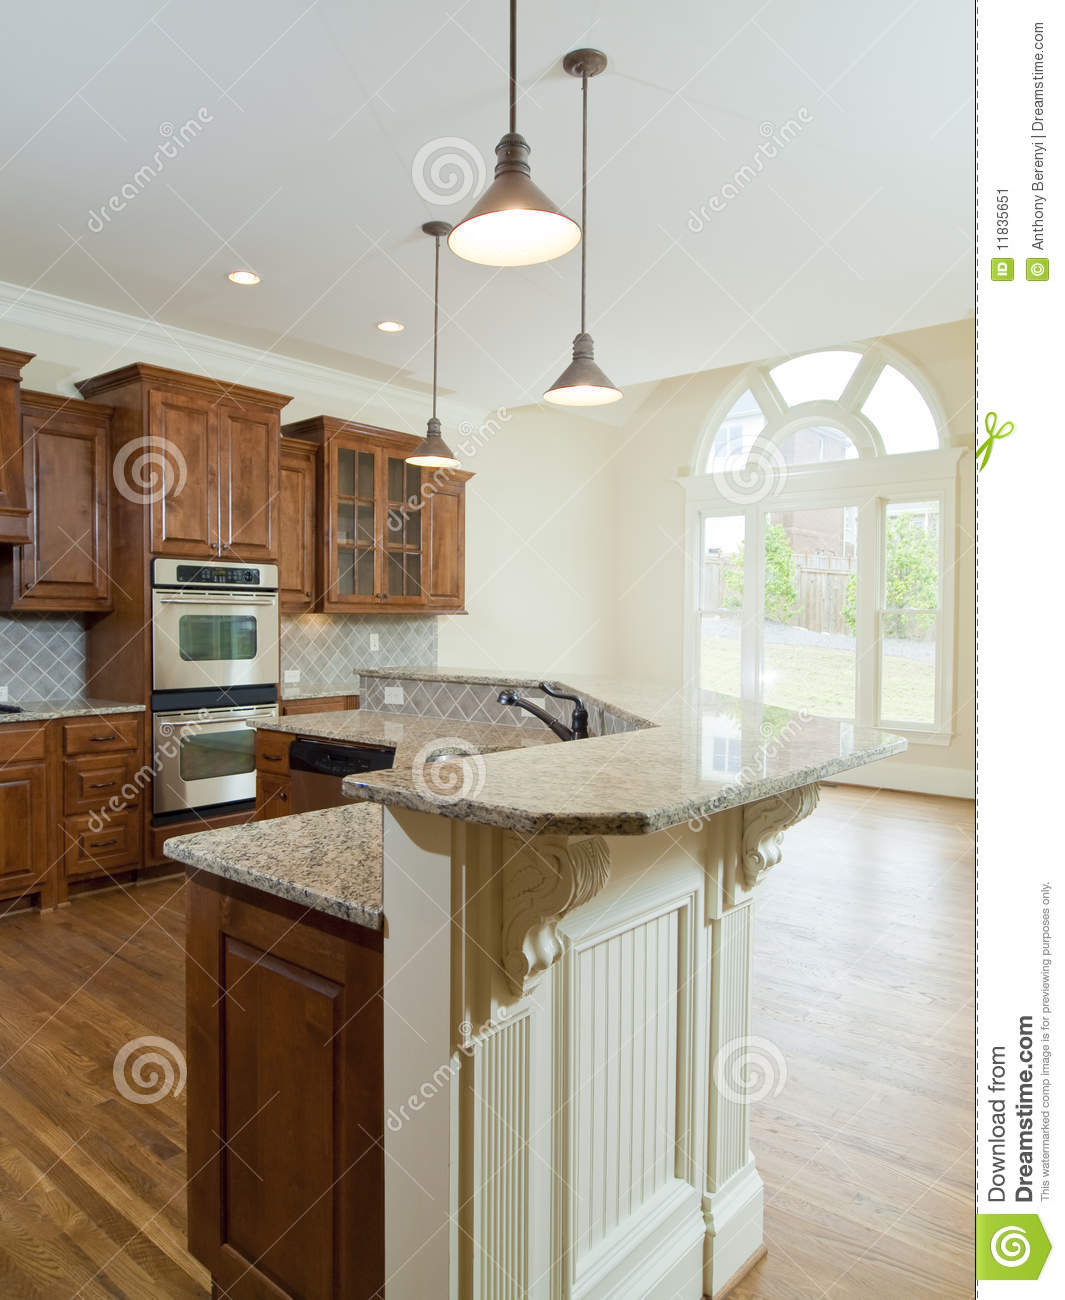 Luxury Kitchen Room Interior Bright Wooden Stock Vector: Model Luxury Home Interior Kitchen Counter Stock Image